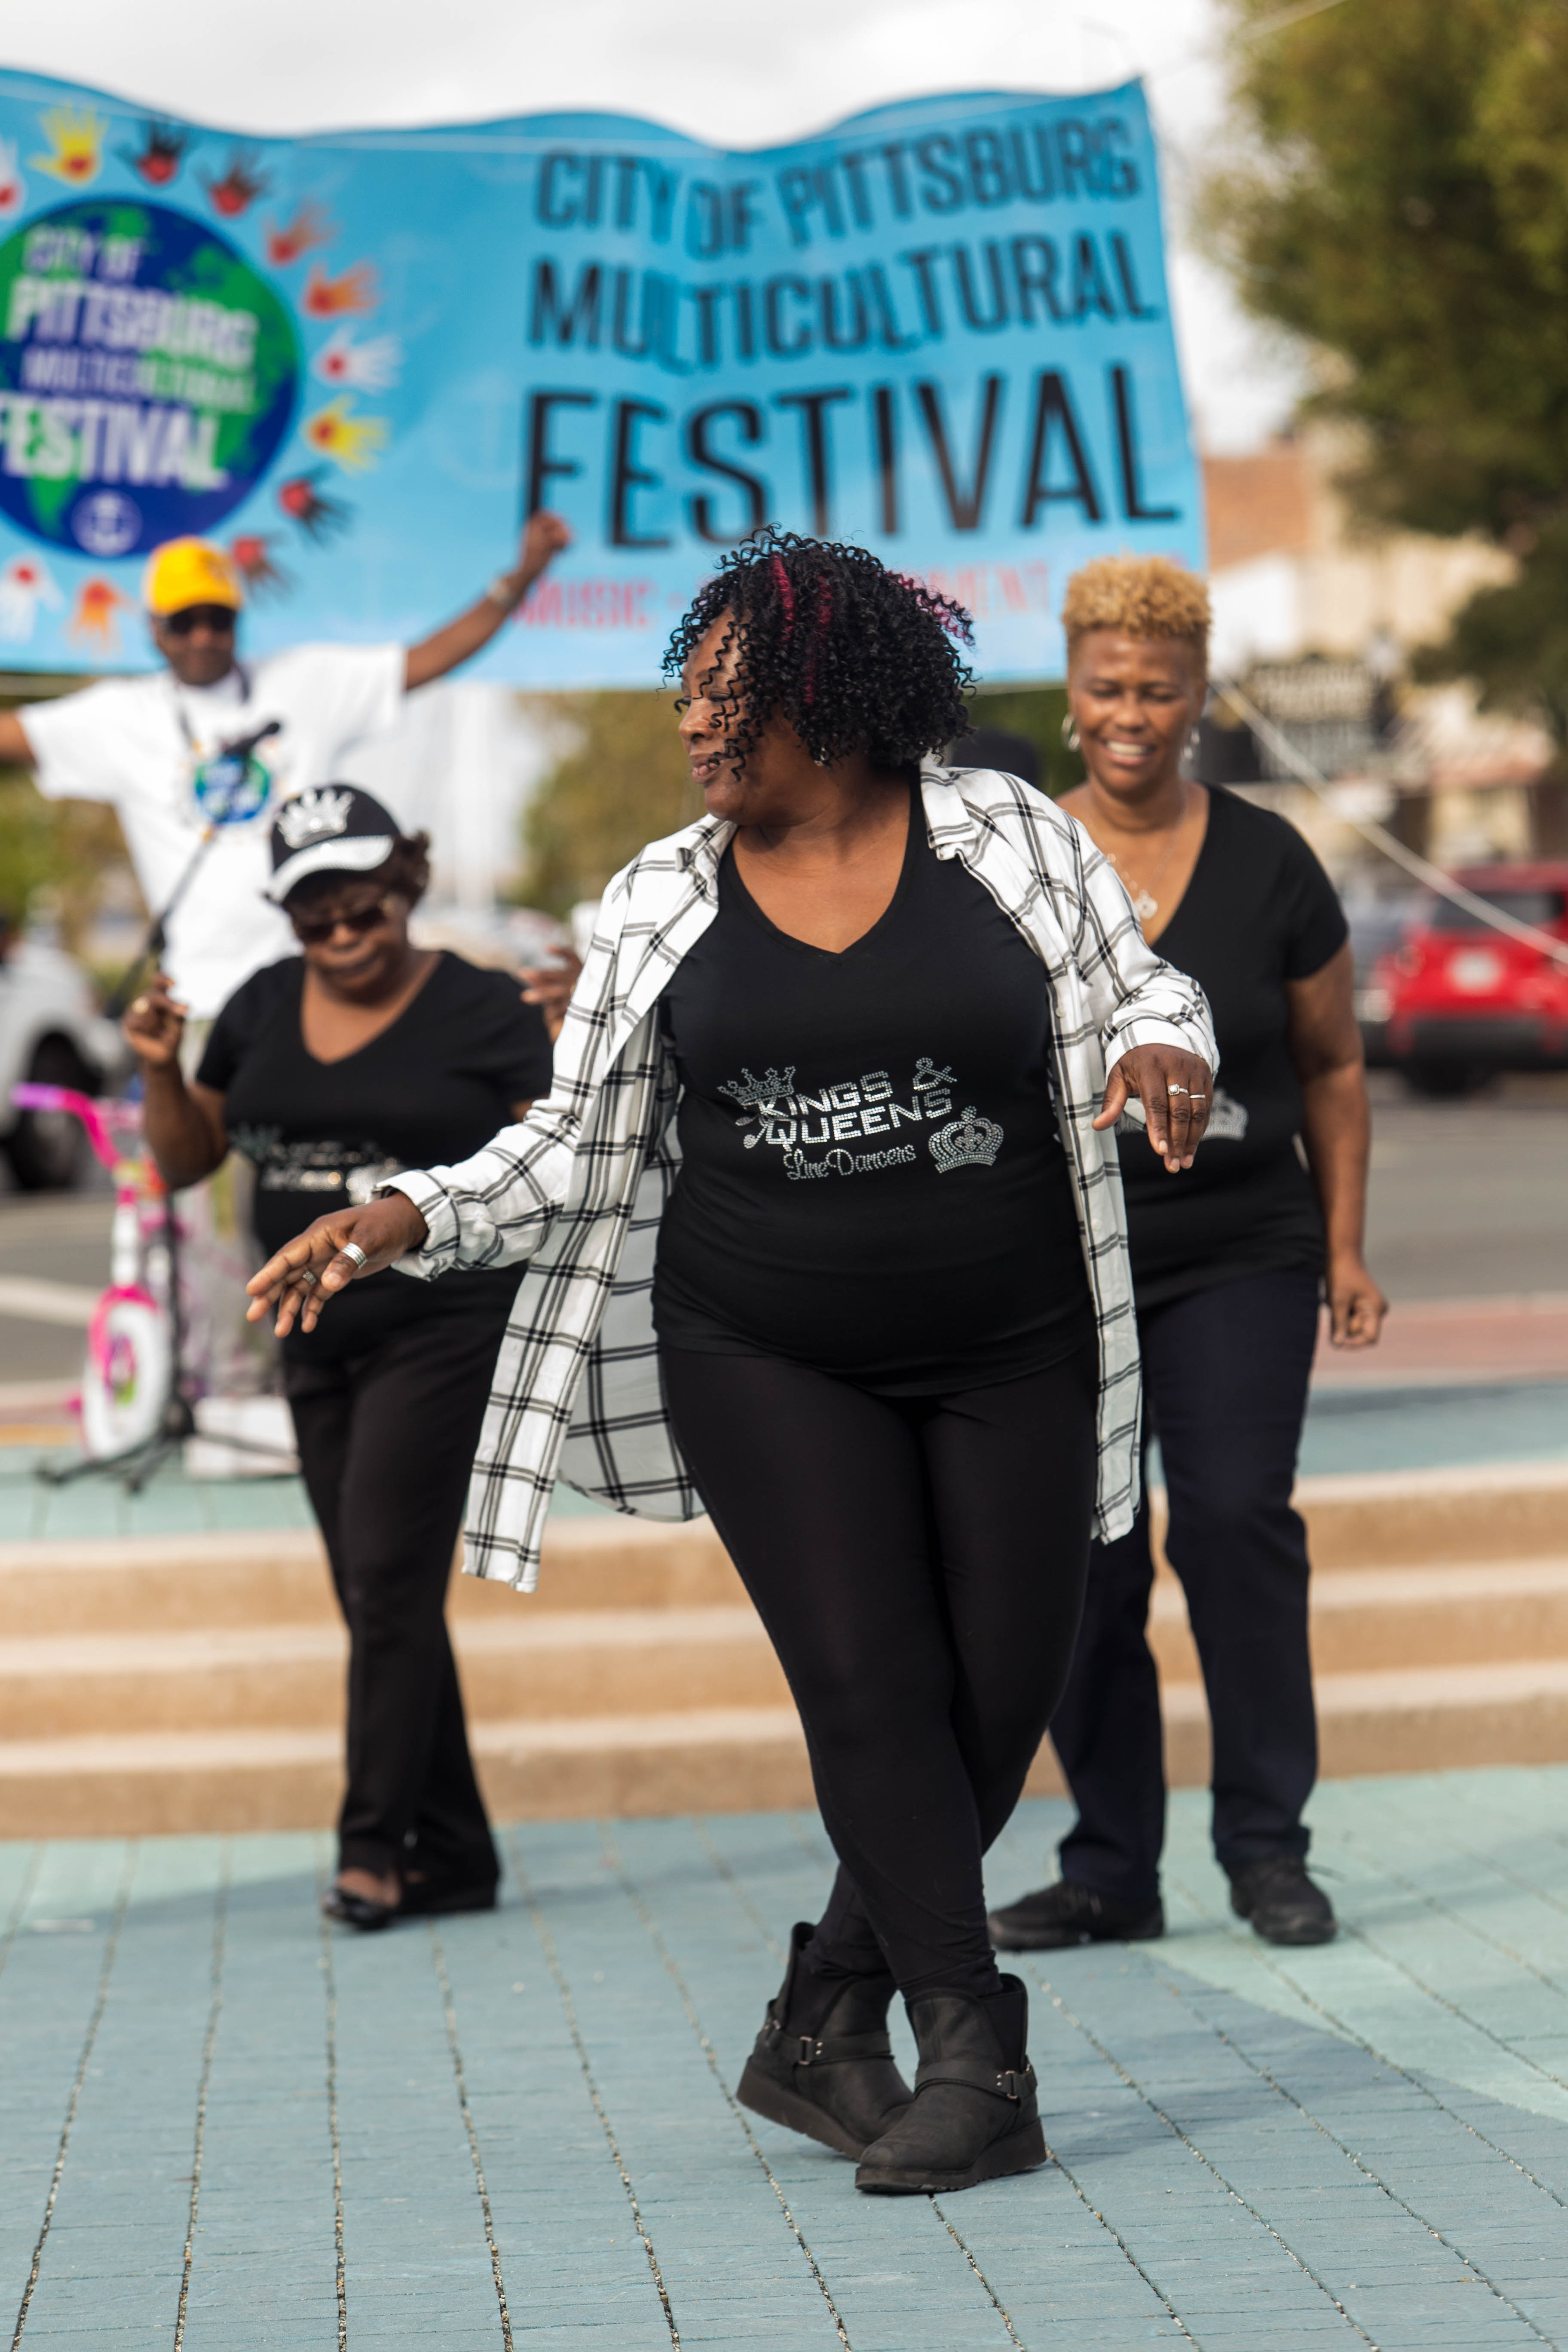 CITY_PITTSBURG_MULTICULTURAL_OCTOBER_2016 (783)